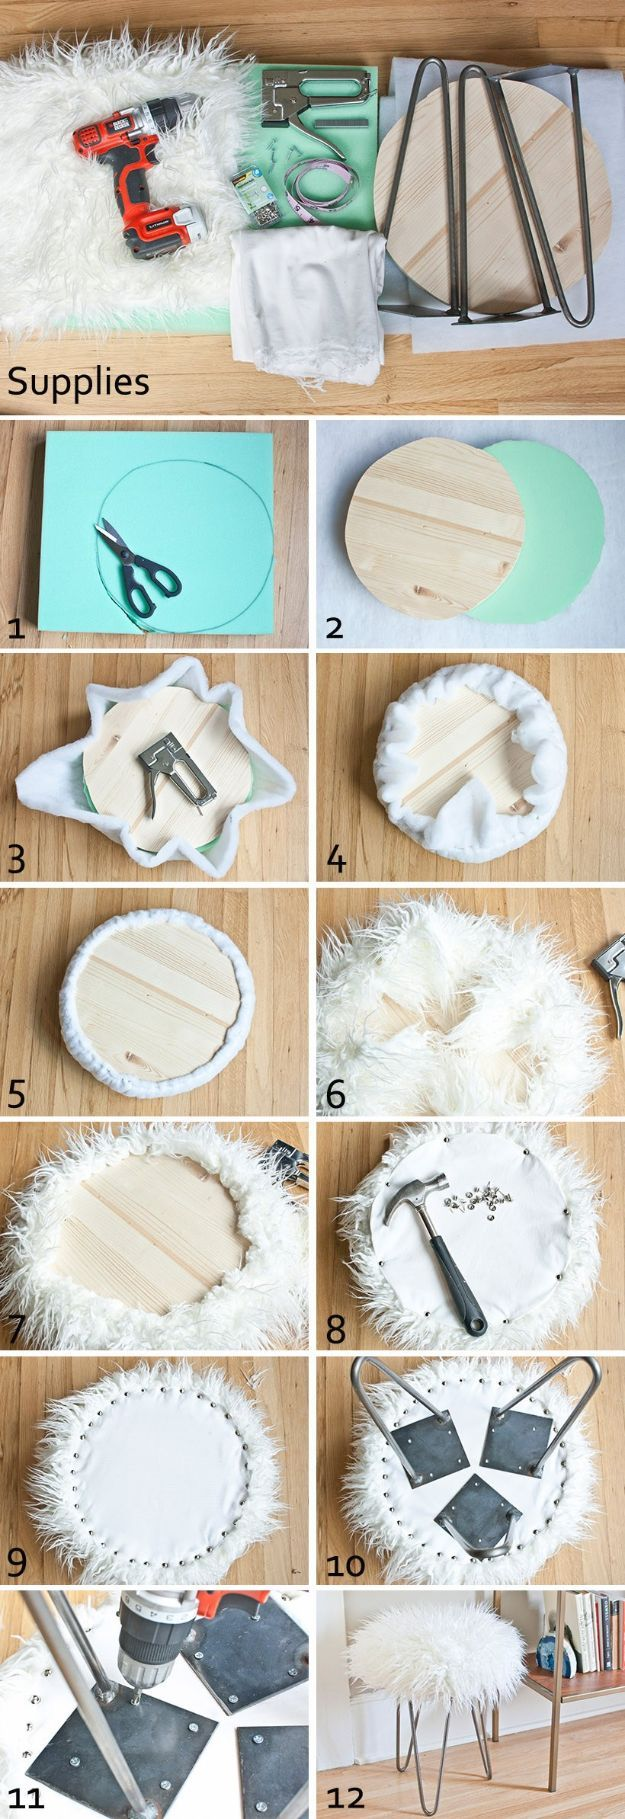 43 Most Awesome DIY Decor Ideas for Teen Girls – DIY Projects for Teens